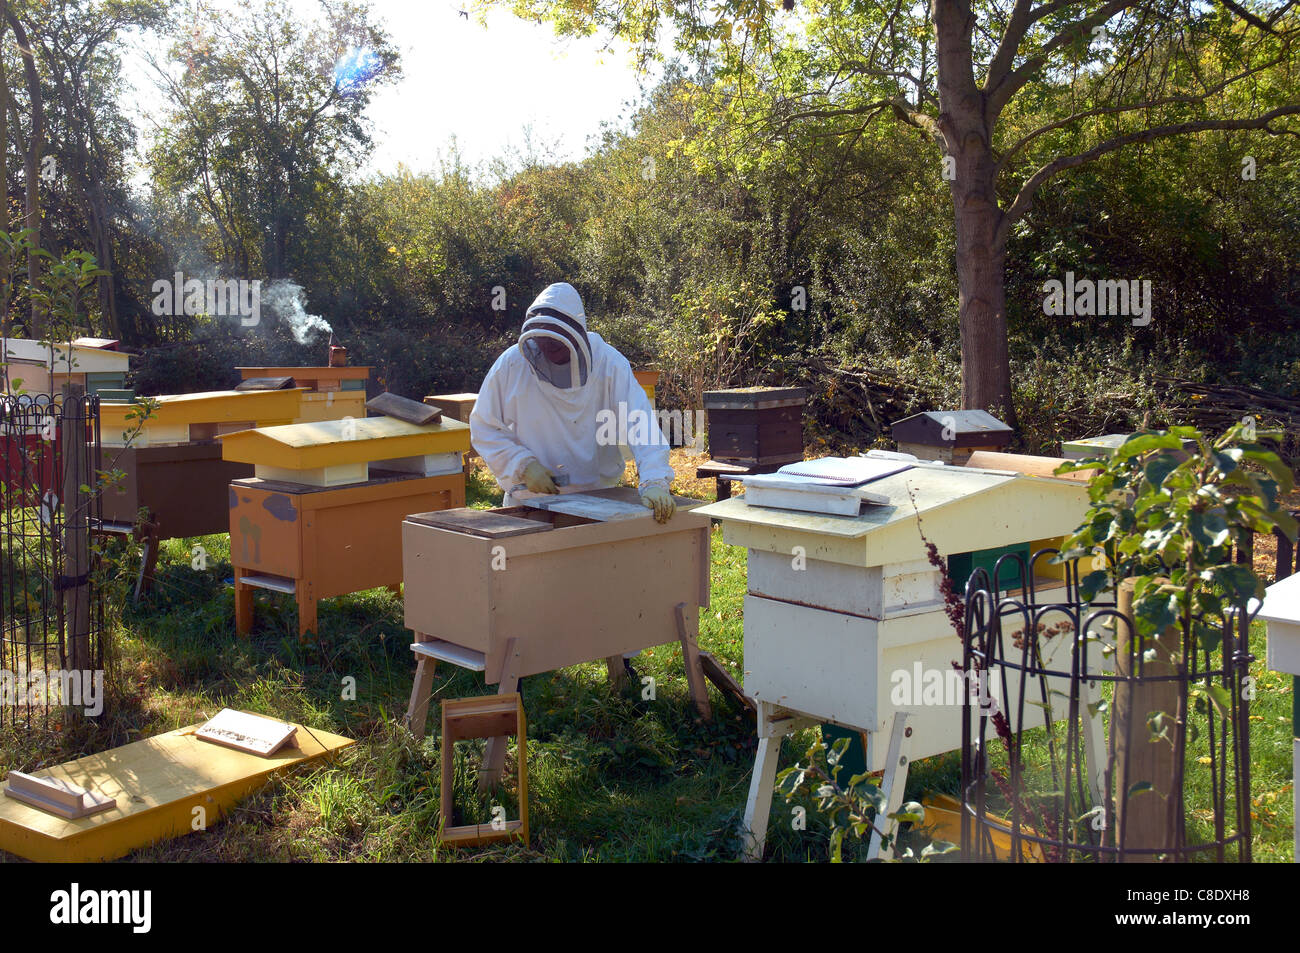 Beekeeper looking after Hives, UK - Stock Image